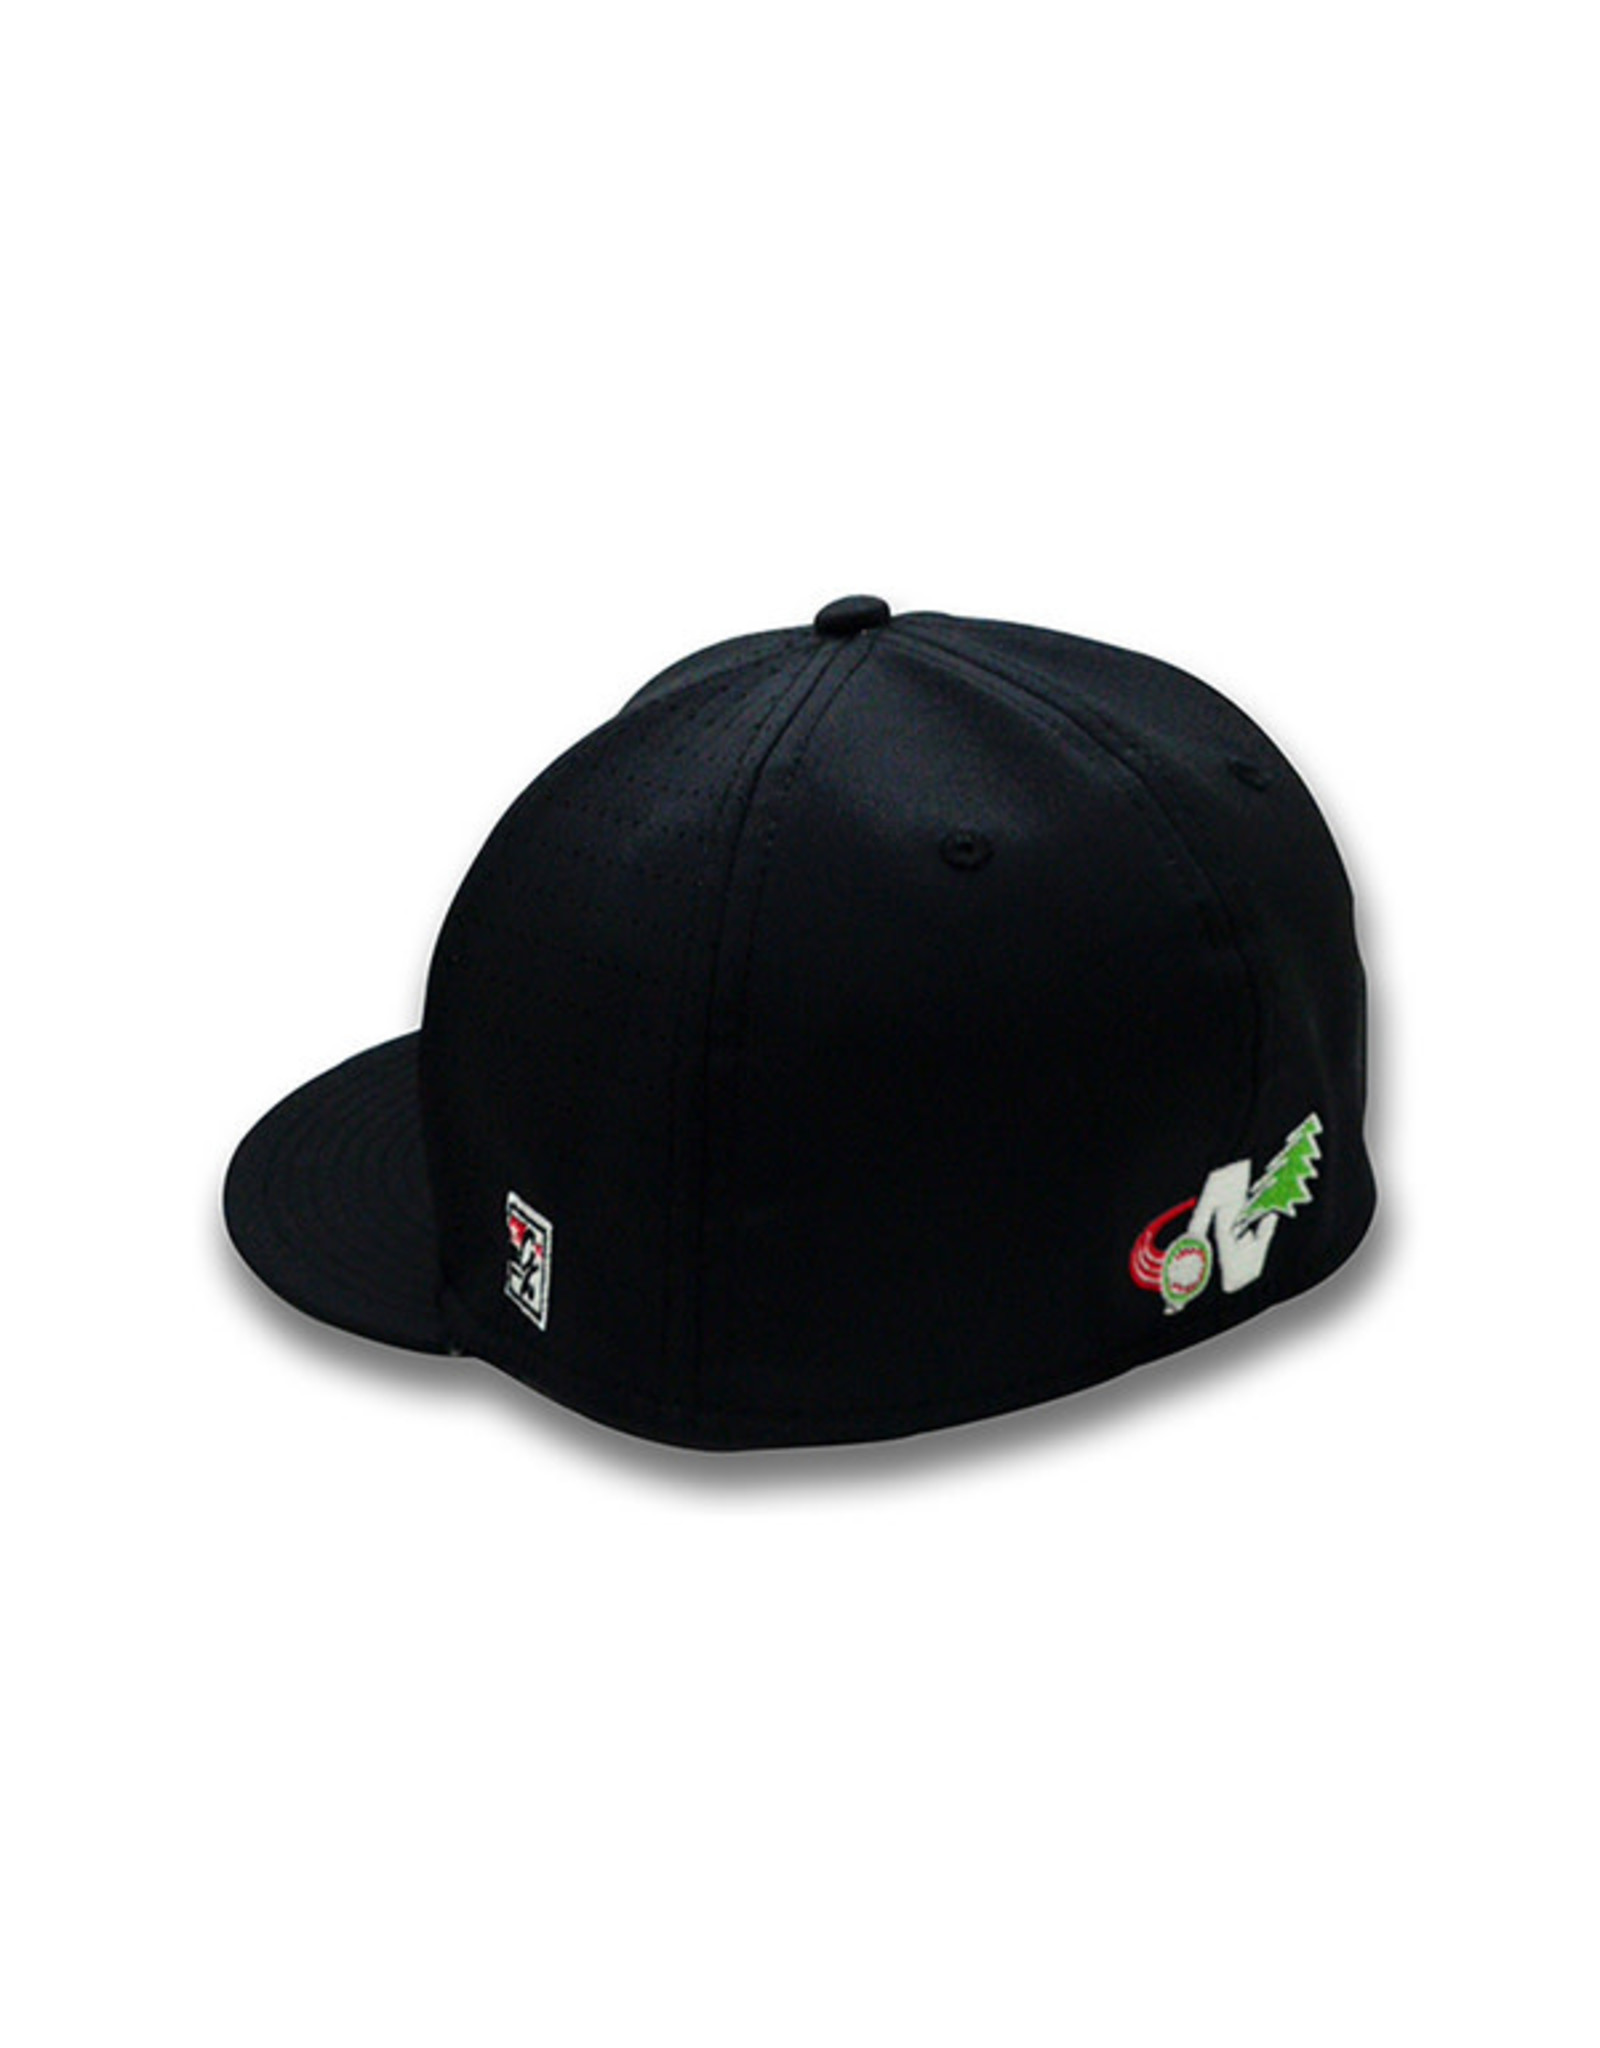 The Game 1500 Youth On-Field Black Home Cap